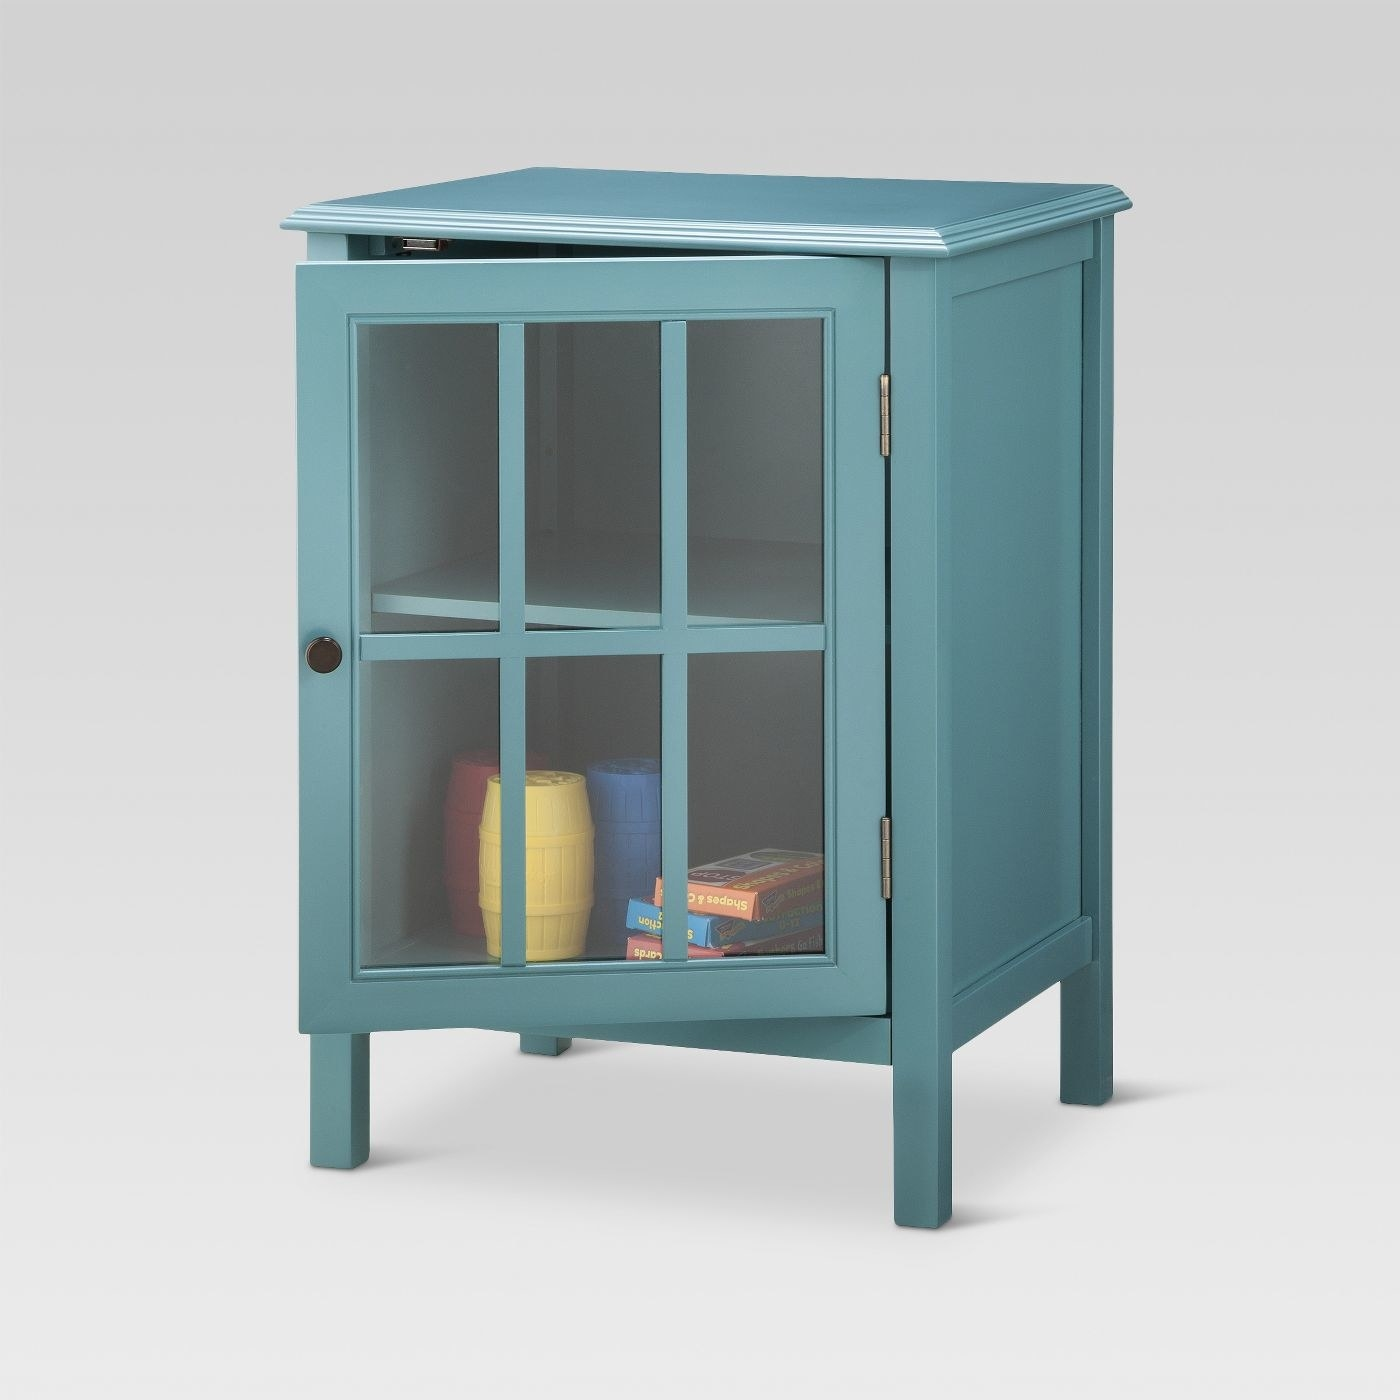 a blue cabinet with items inside